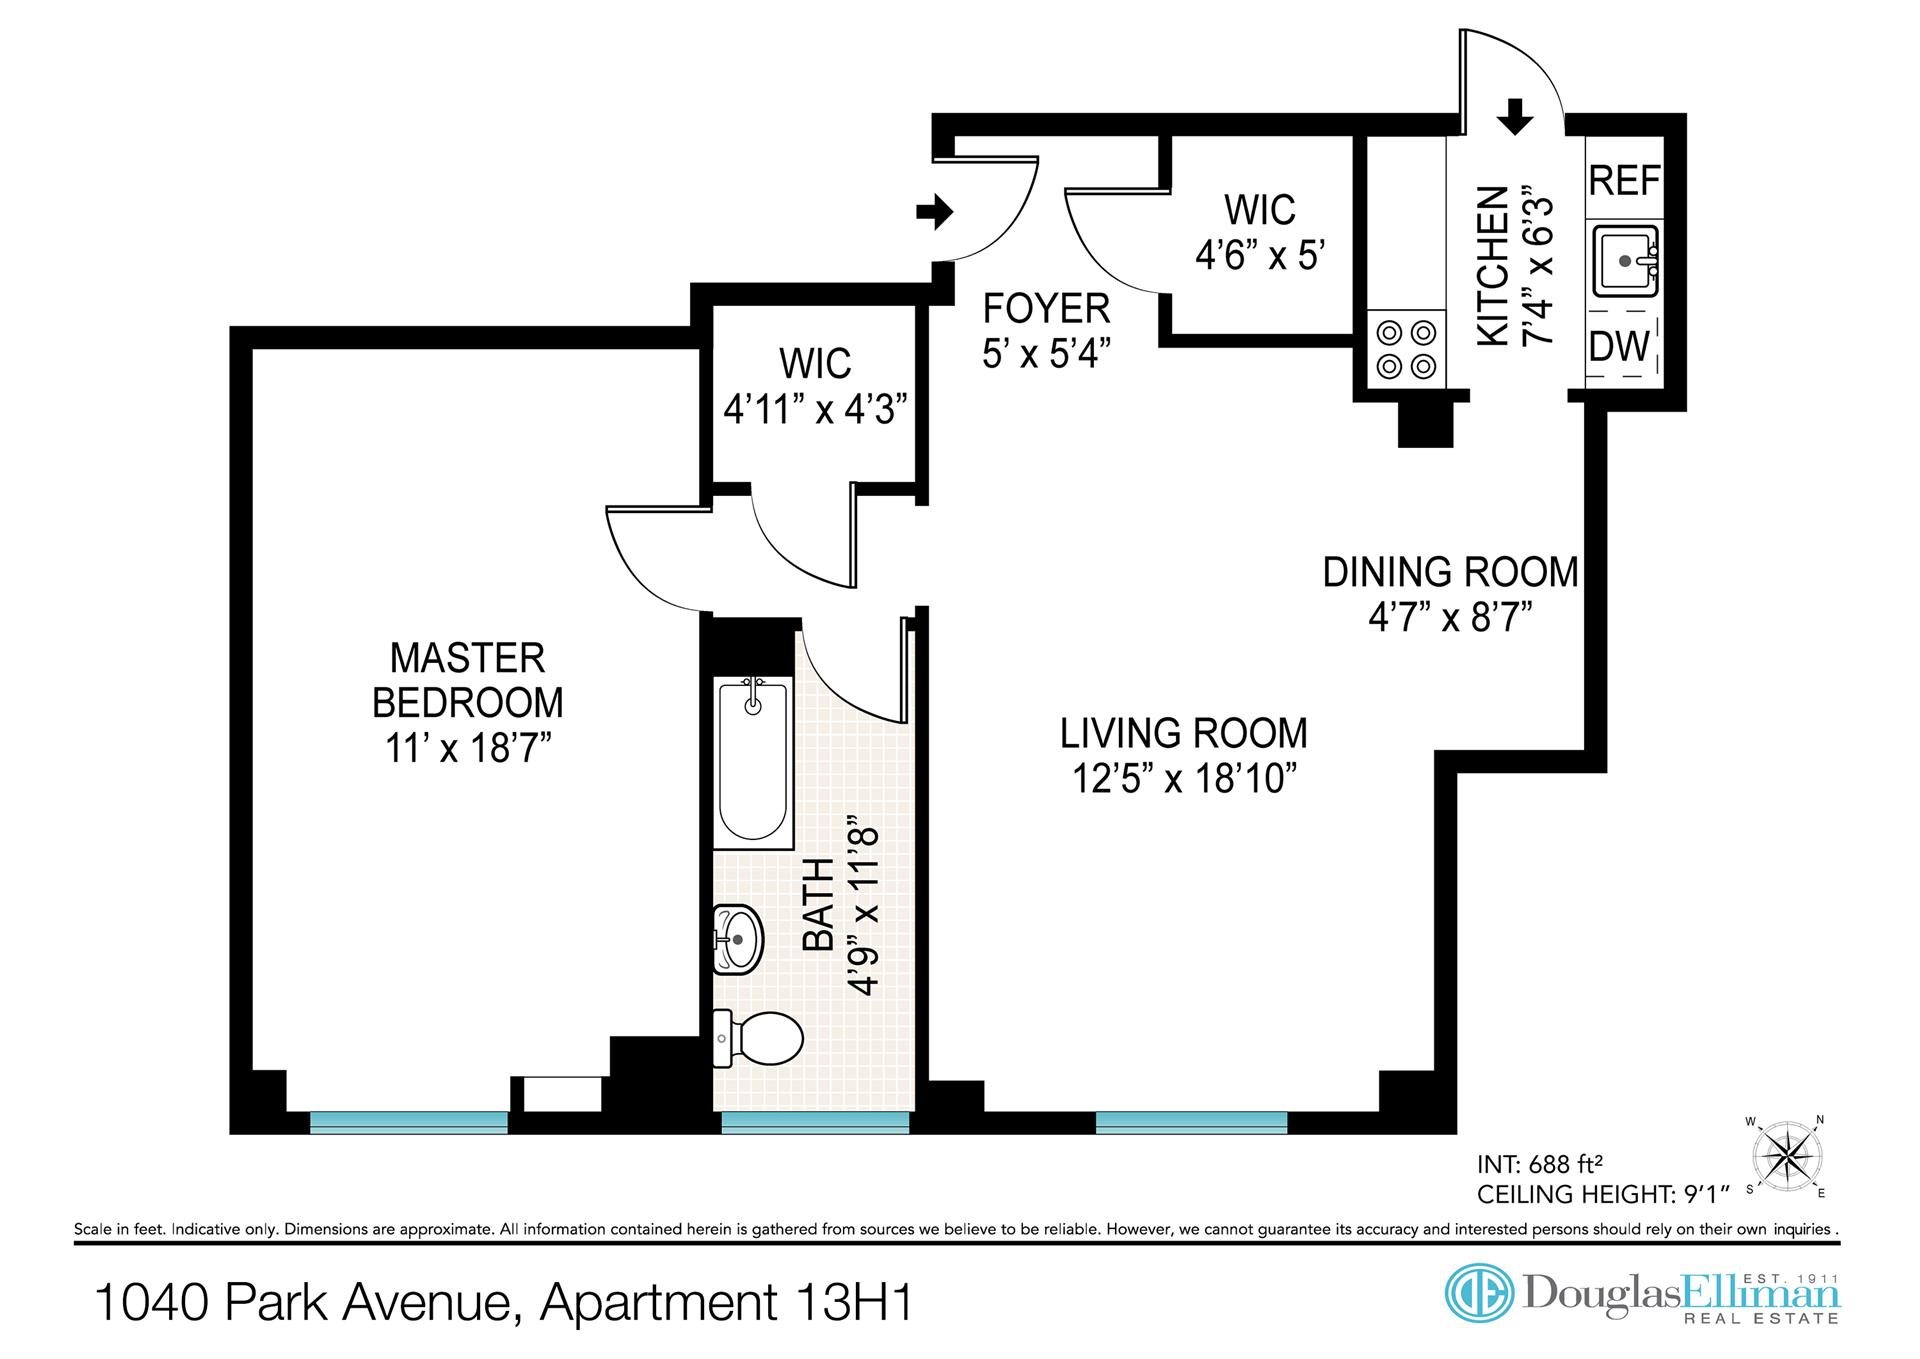 Floor plan of Park-86 Apartment Corp., 1040 Park Avenue, 13H1 - Carnegie Hill, New York